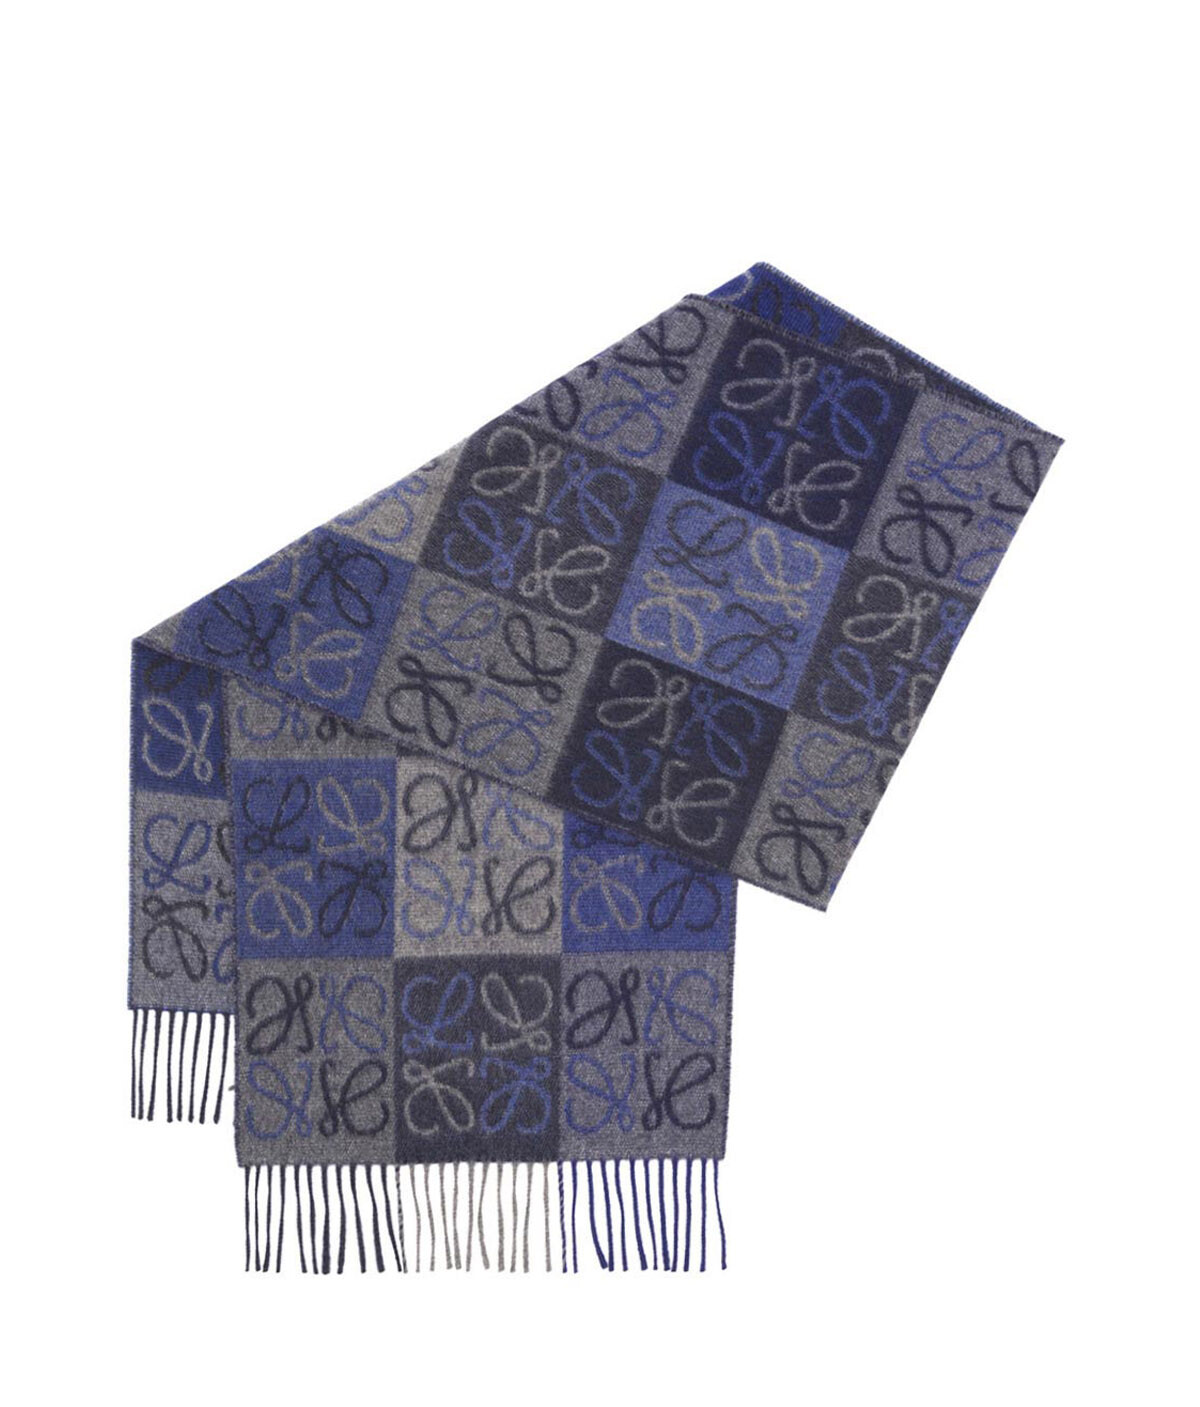 LOEWE 38X180 Scarf Anagram In Lines Blue front